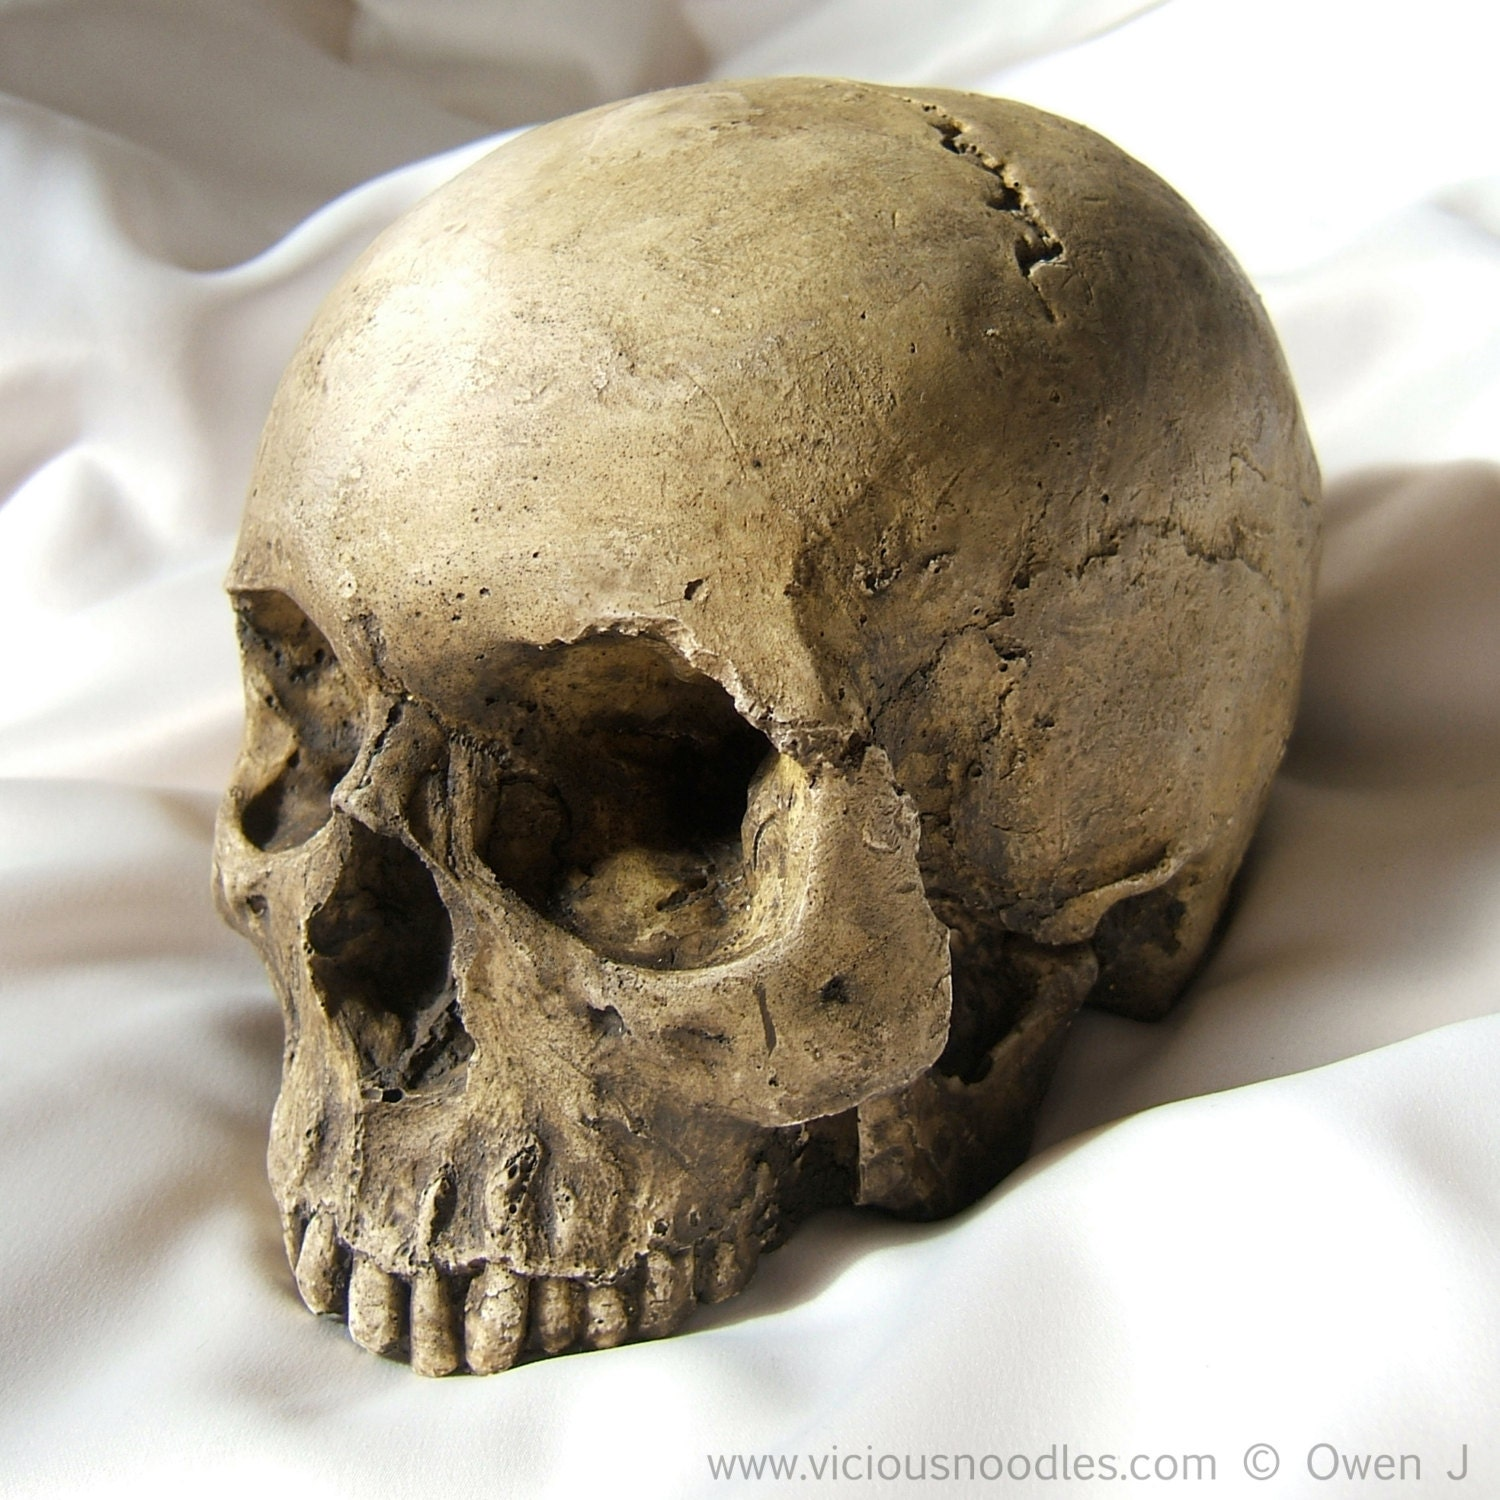 HUMAN SKULL REPLICA full size realistic replica made from plaster of Paris and painted for an aged, weathered effect - viciousnoodles